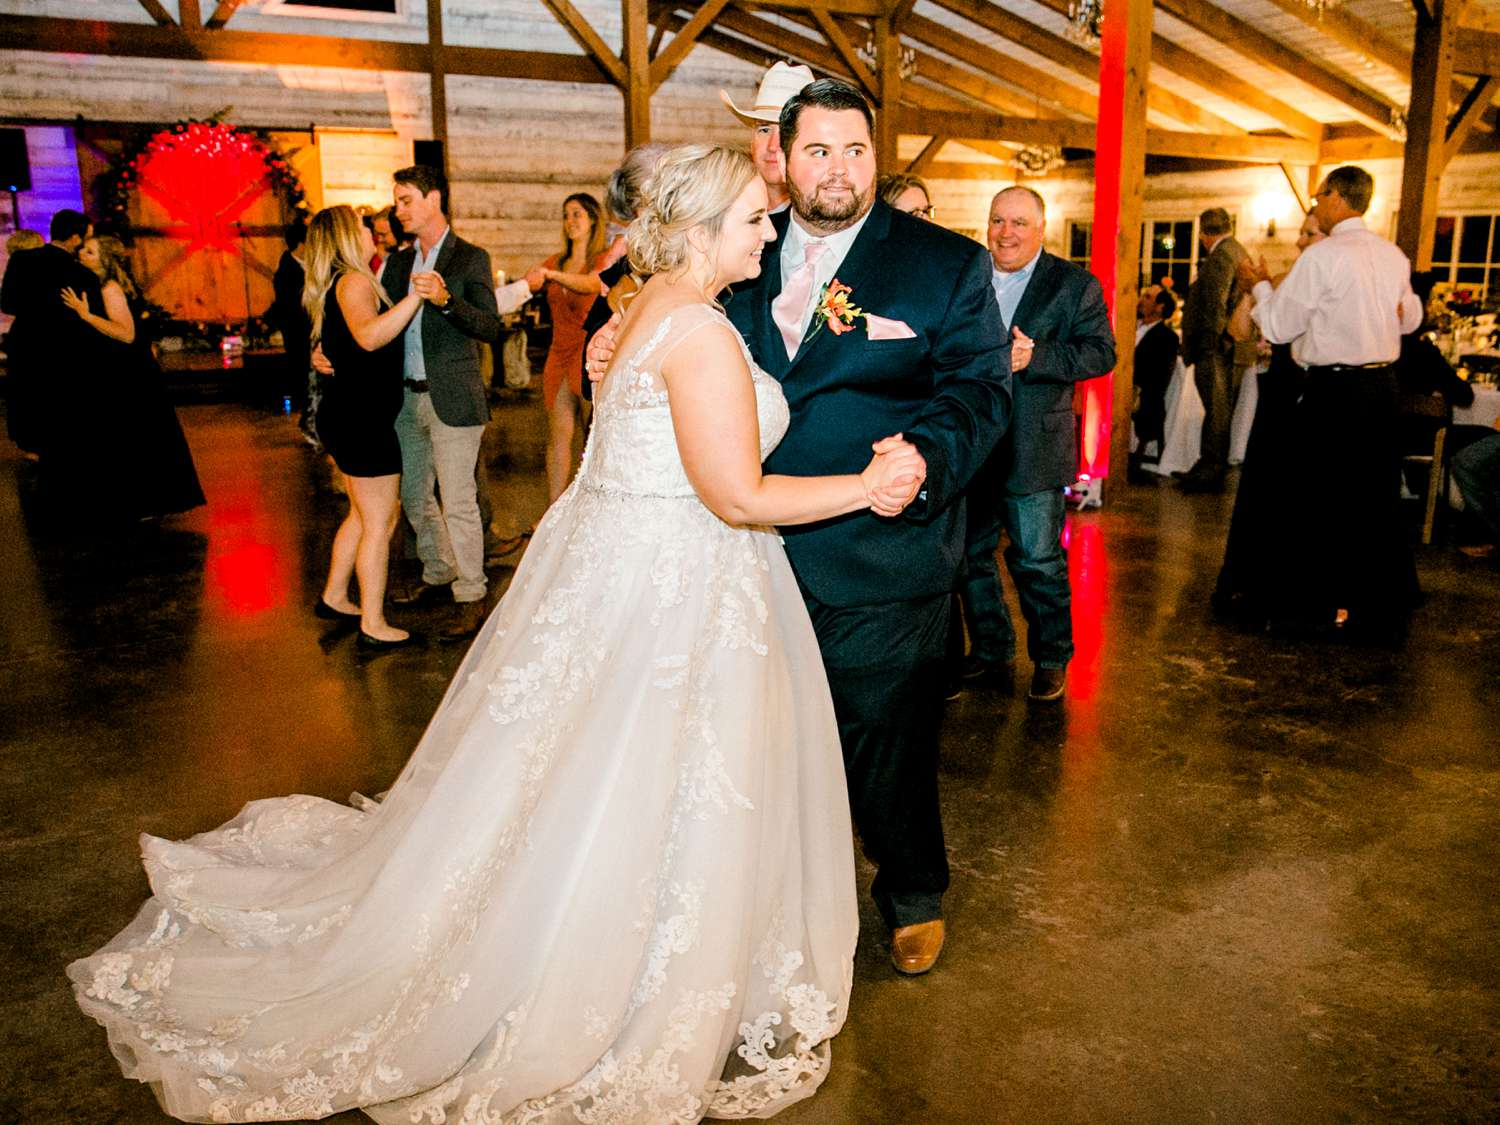 TIMMI+JORDAN_IRVINE_EBERLEY_BROOKS_EVENTS_ALLEEJ_WEDDINGS_0162.jpg